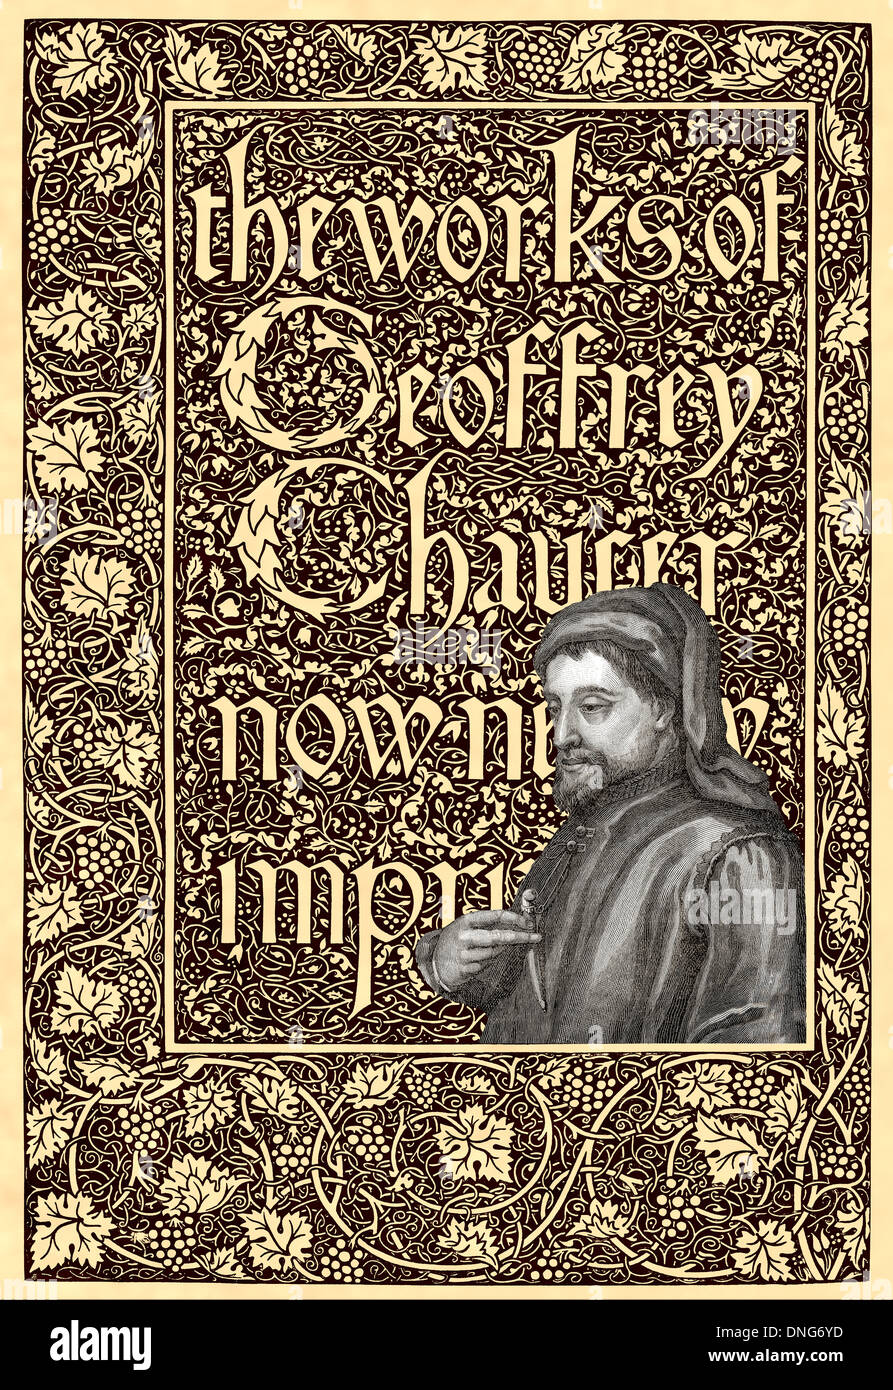 Portrait of Geoffrey Chaucer, ca. 1343 - 1400, part of the Canterbury Tales - Stock Image